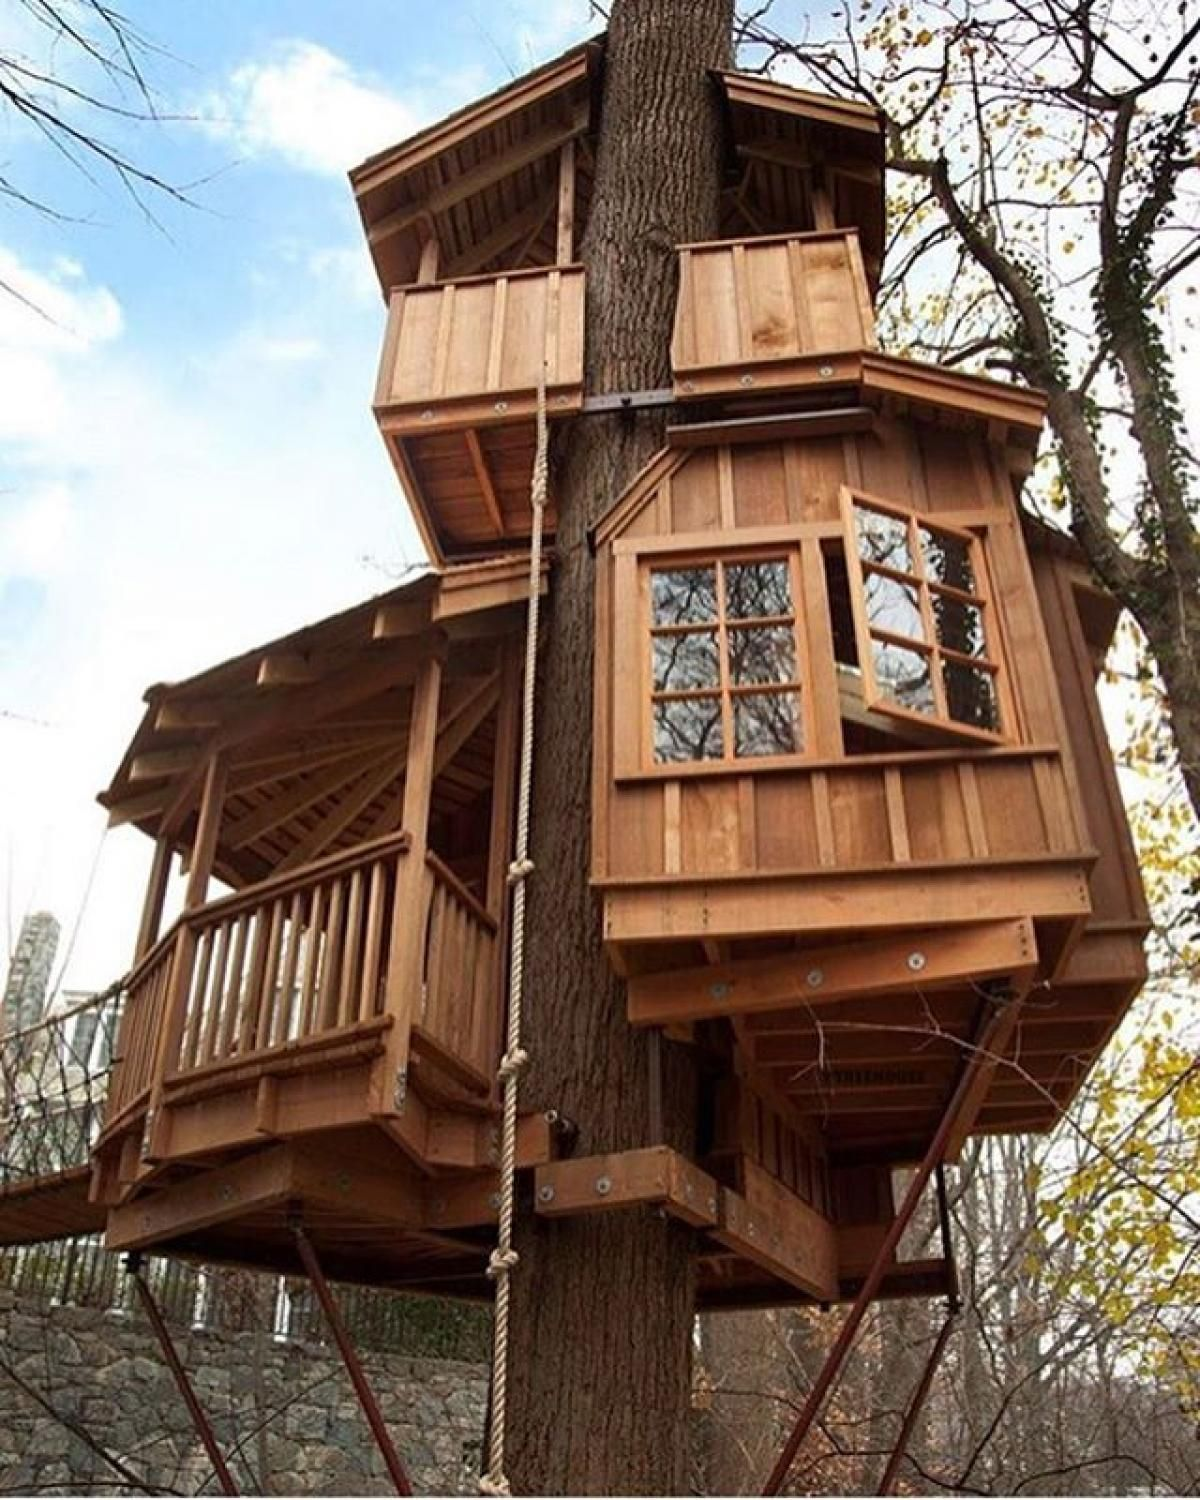 3 House With Creative Tree House Design